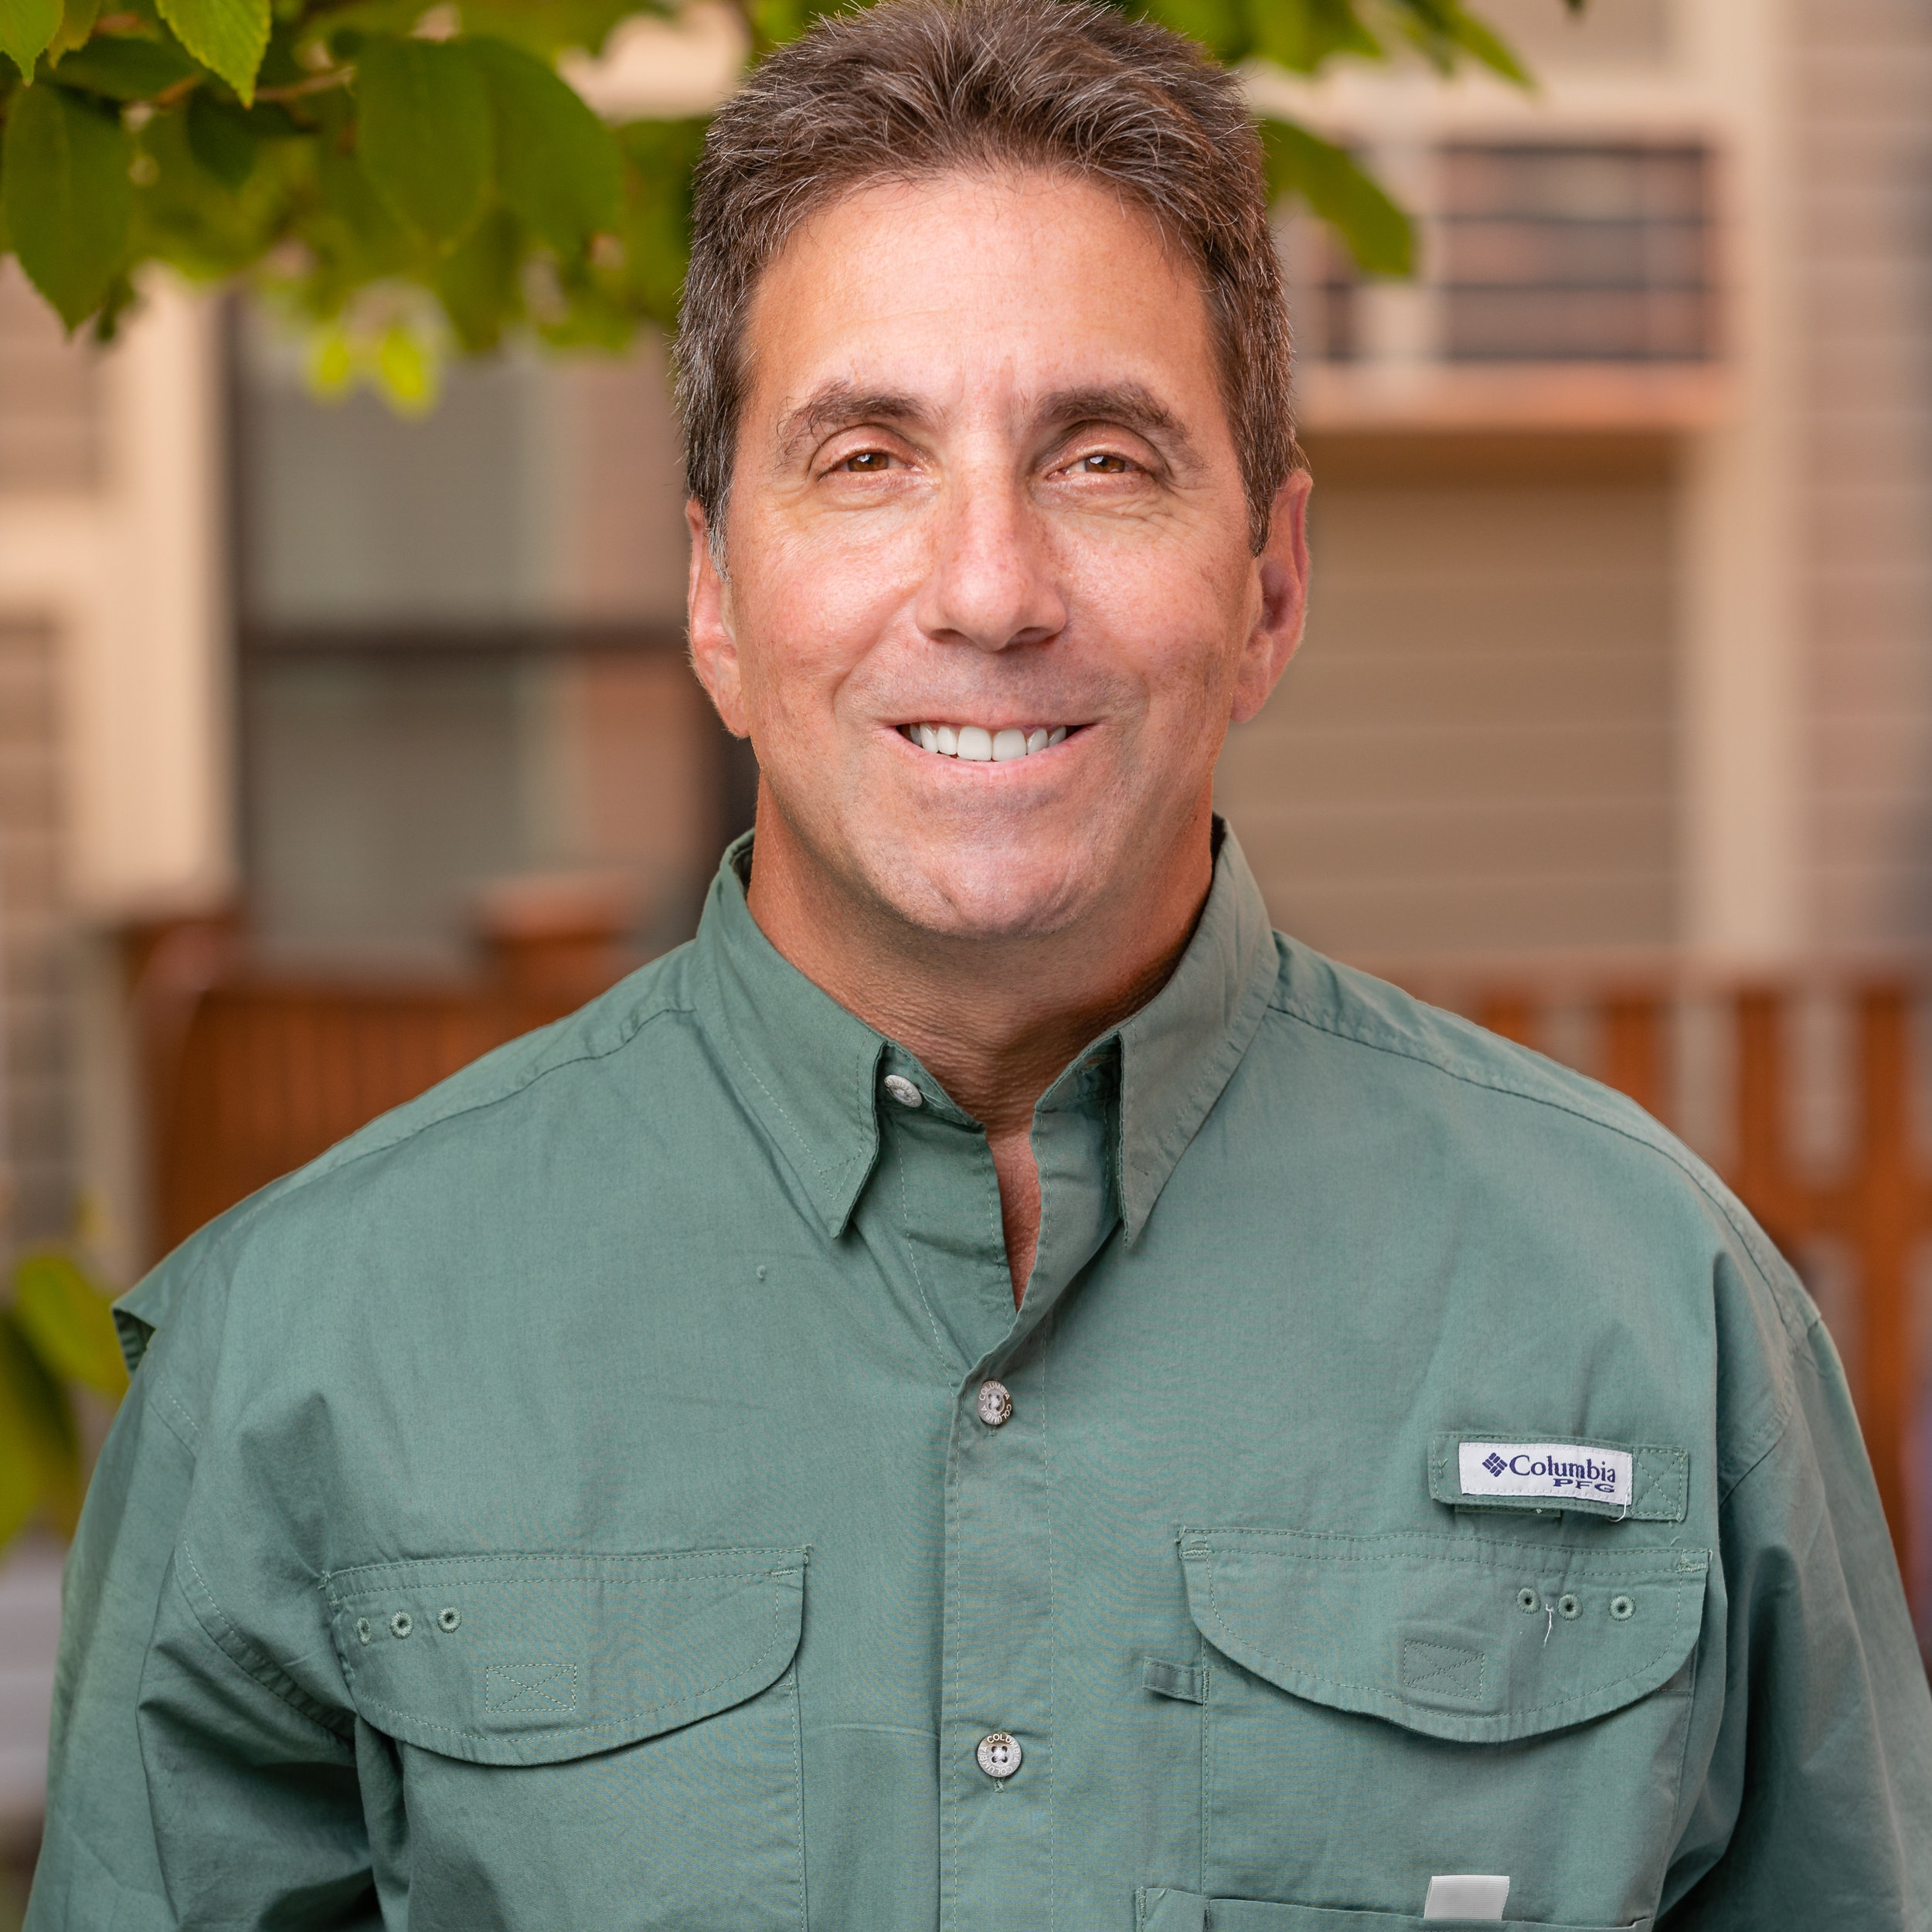 Michael Wolfson   Michael joined HRI in 2016, continuing his career in residential construction. Formerly as a General Contractor developing affordable home ownership opportunities on Cape Cod and later as a Project Manager remodeling in Metrowest, Michael has been involved in all phases of building homes. His responsibilities include inspecting properties, writing construction specifications, as well as active project construction management for the HIP and CNAHS programs, as well as the HRI/CNAHS rental portfolio.